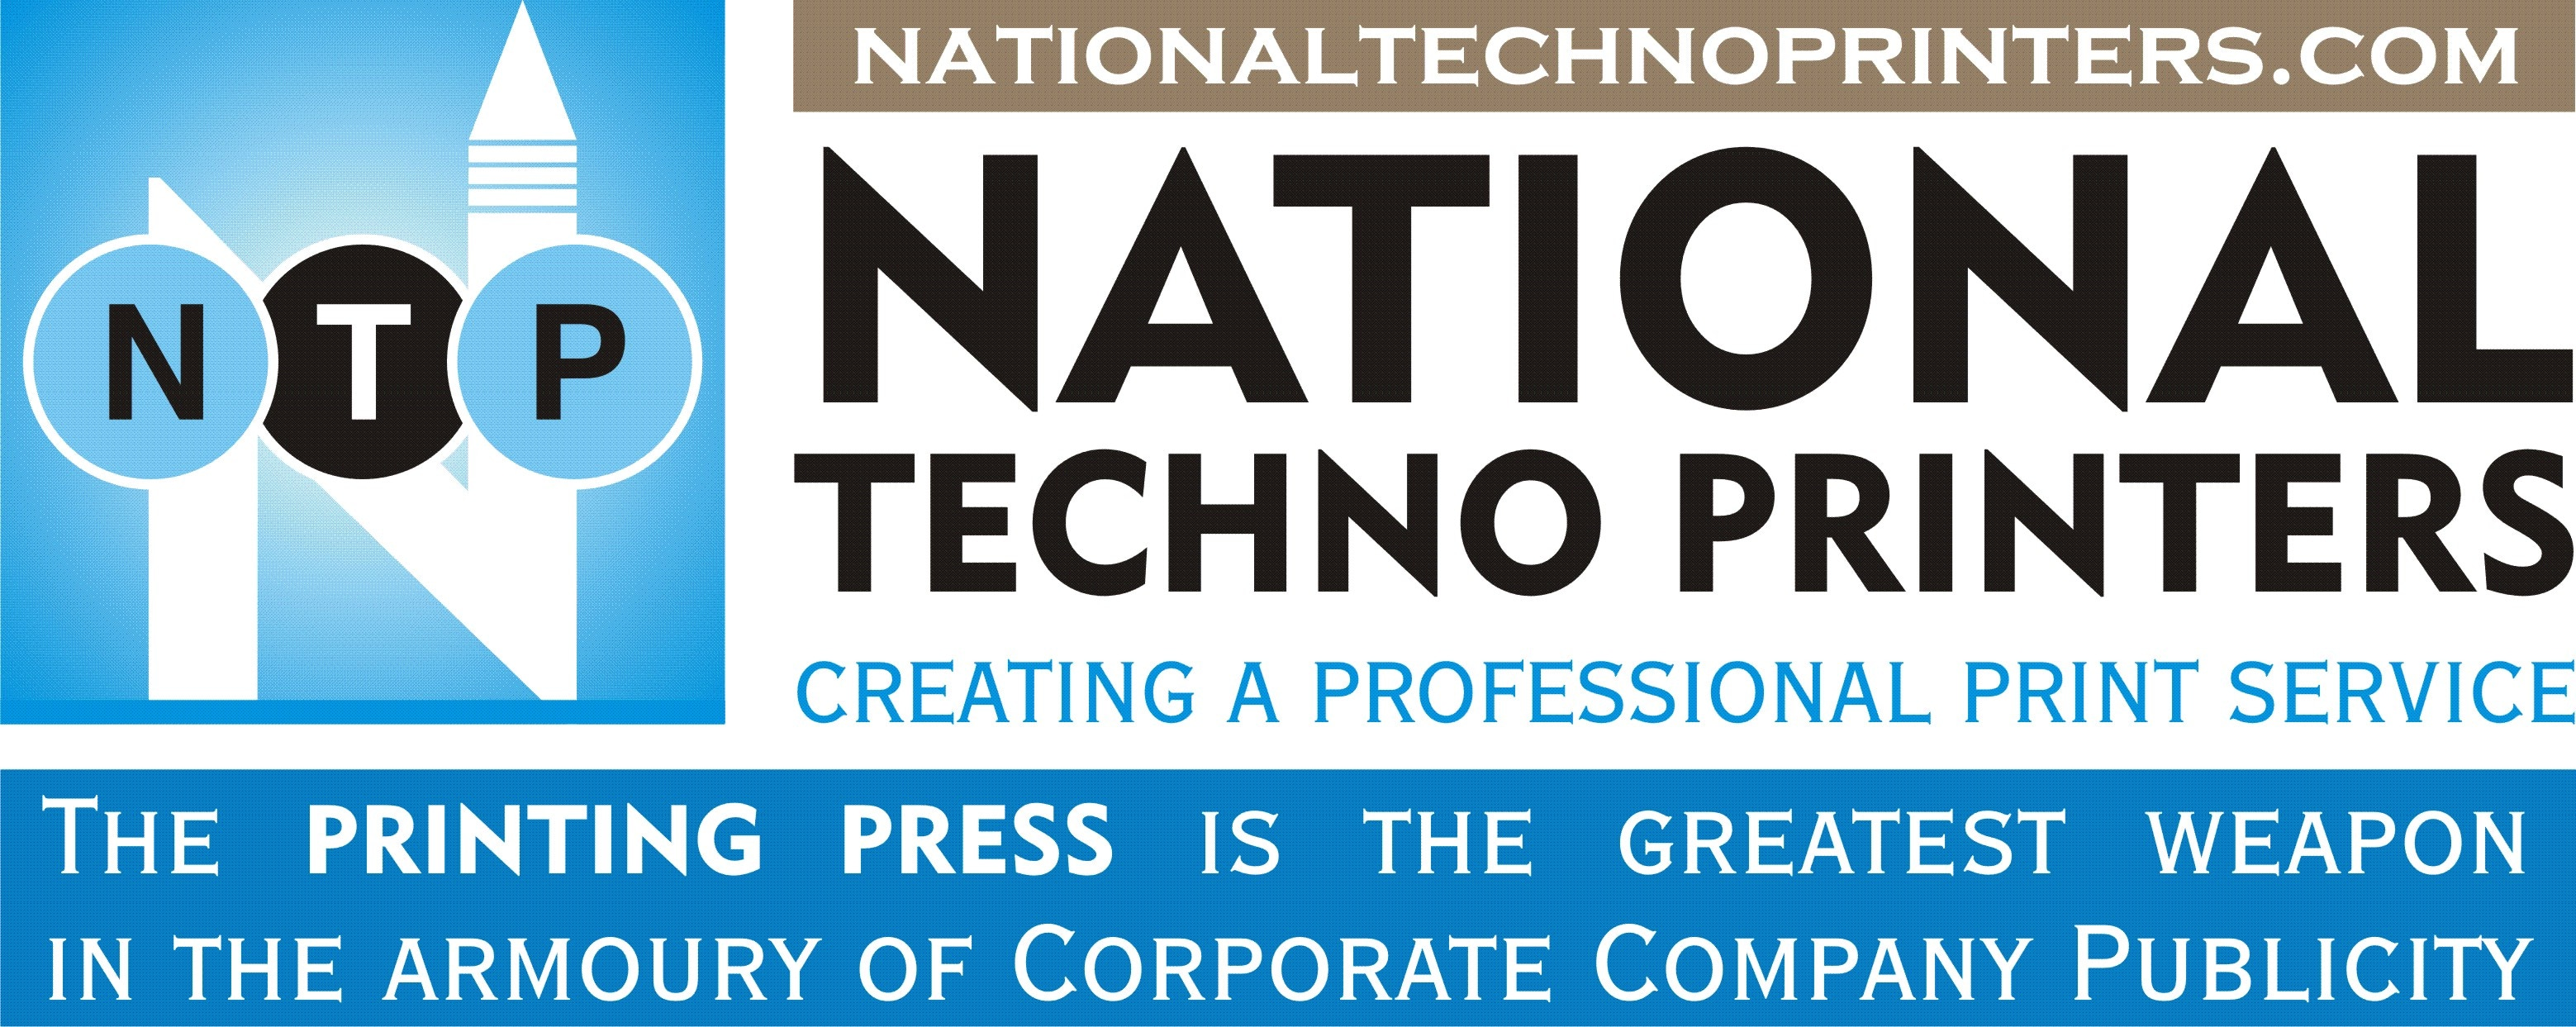 NATIONAL TECHNO PRINTERS